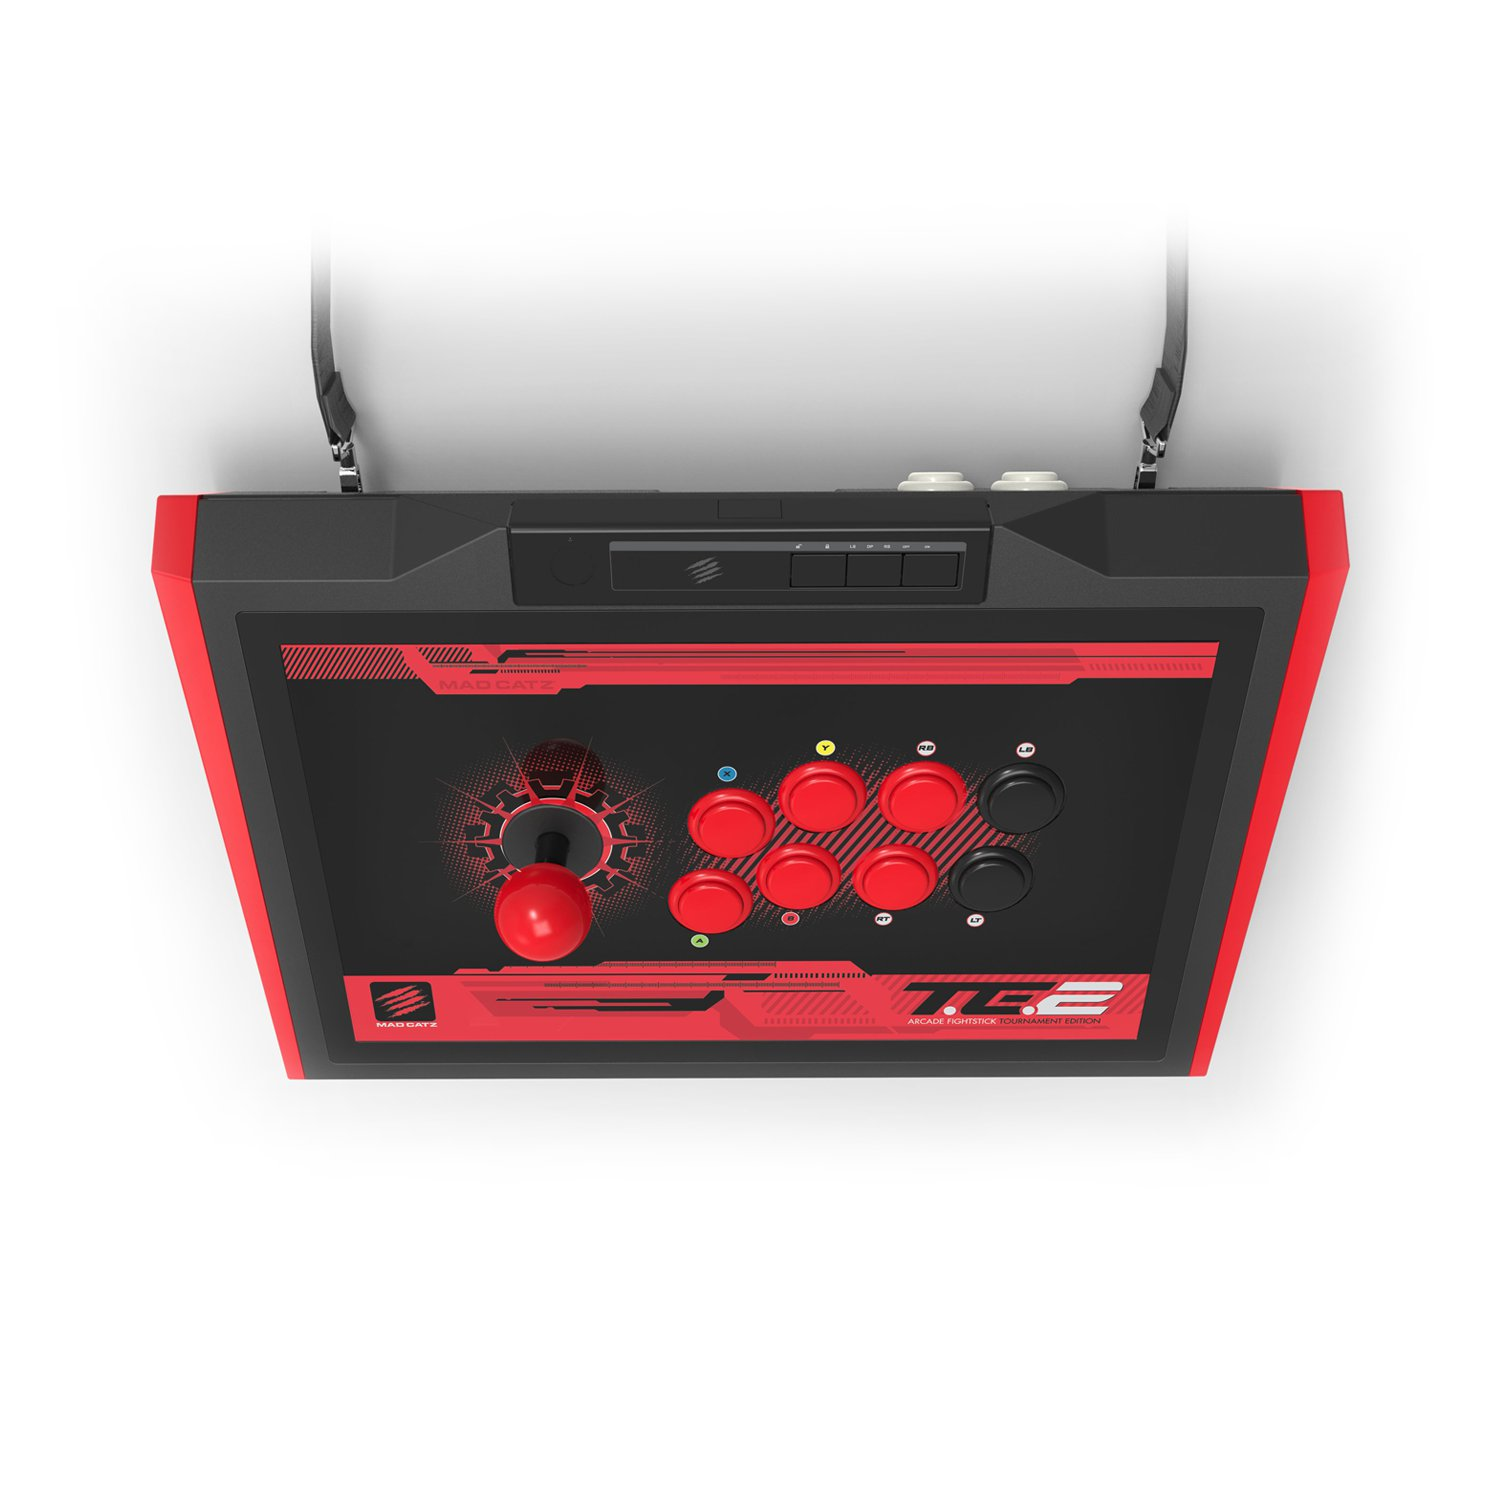 MadCatz Arcade Fightstick Tournament Edition 2 Announced For Xbox One #27217